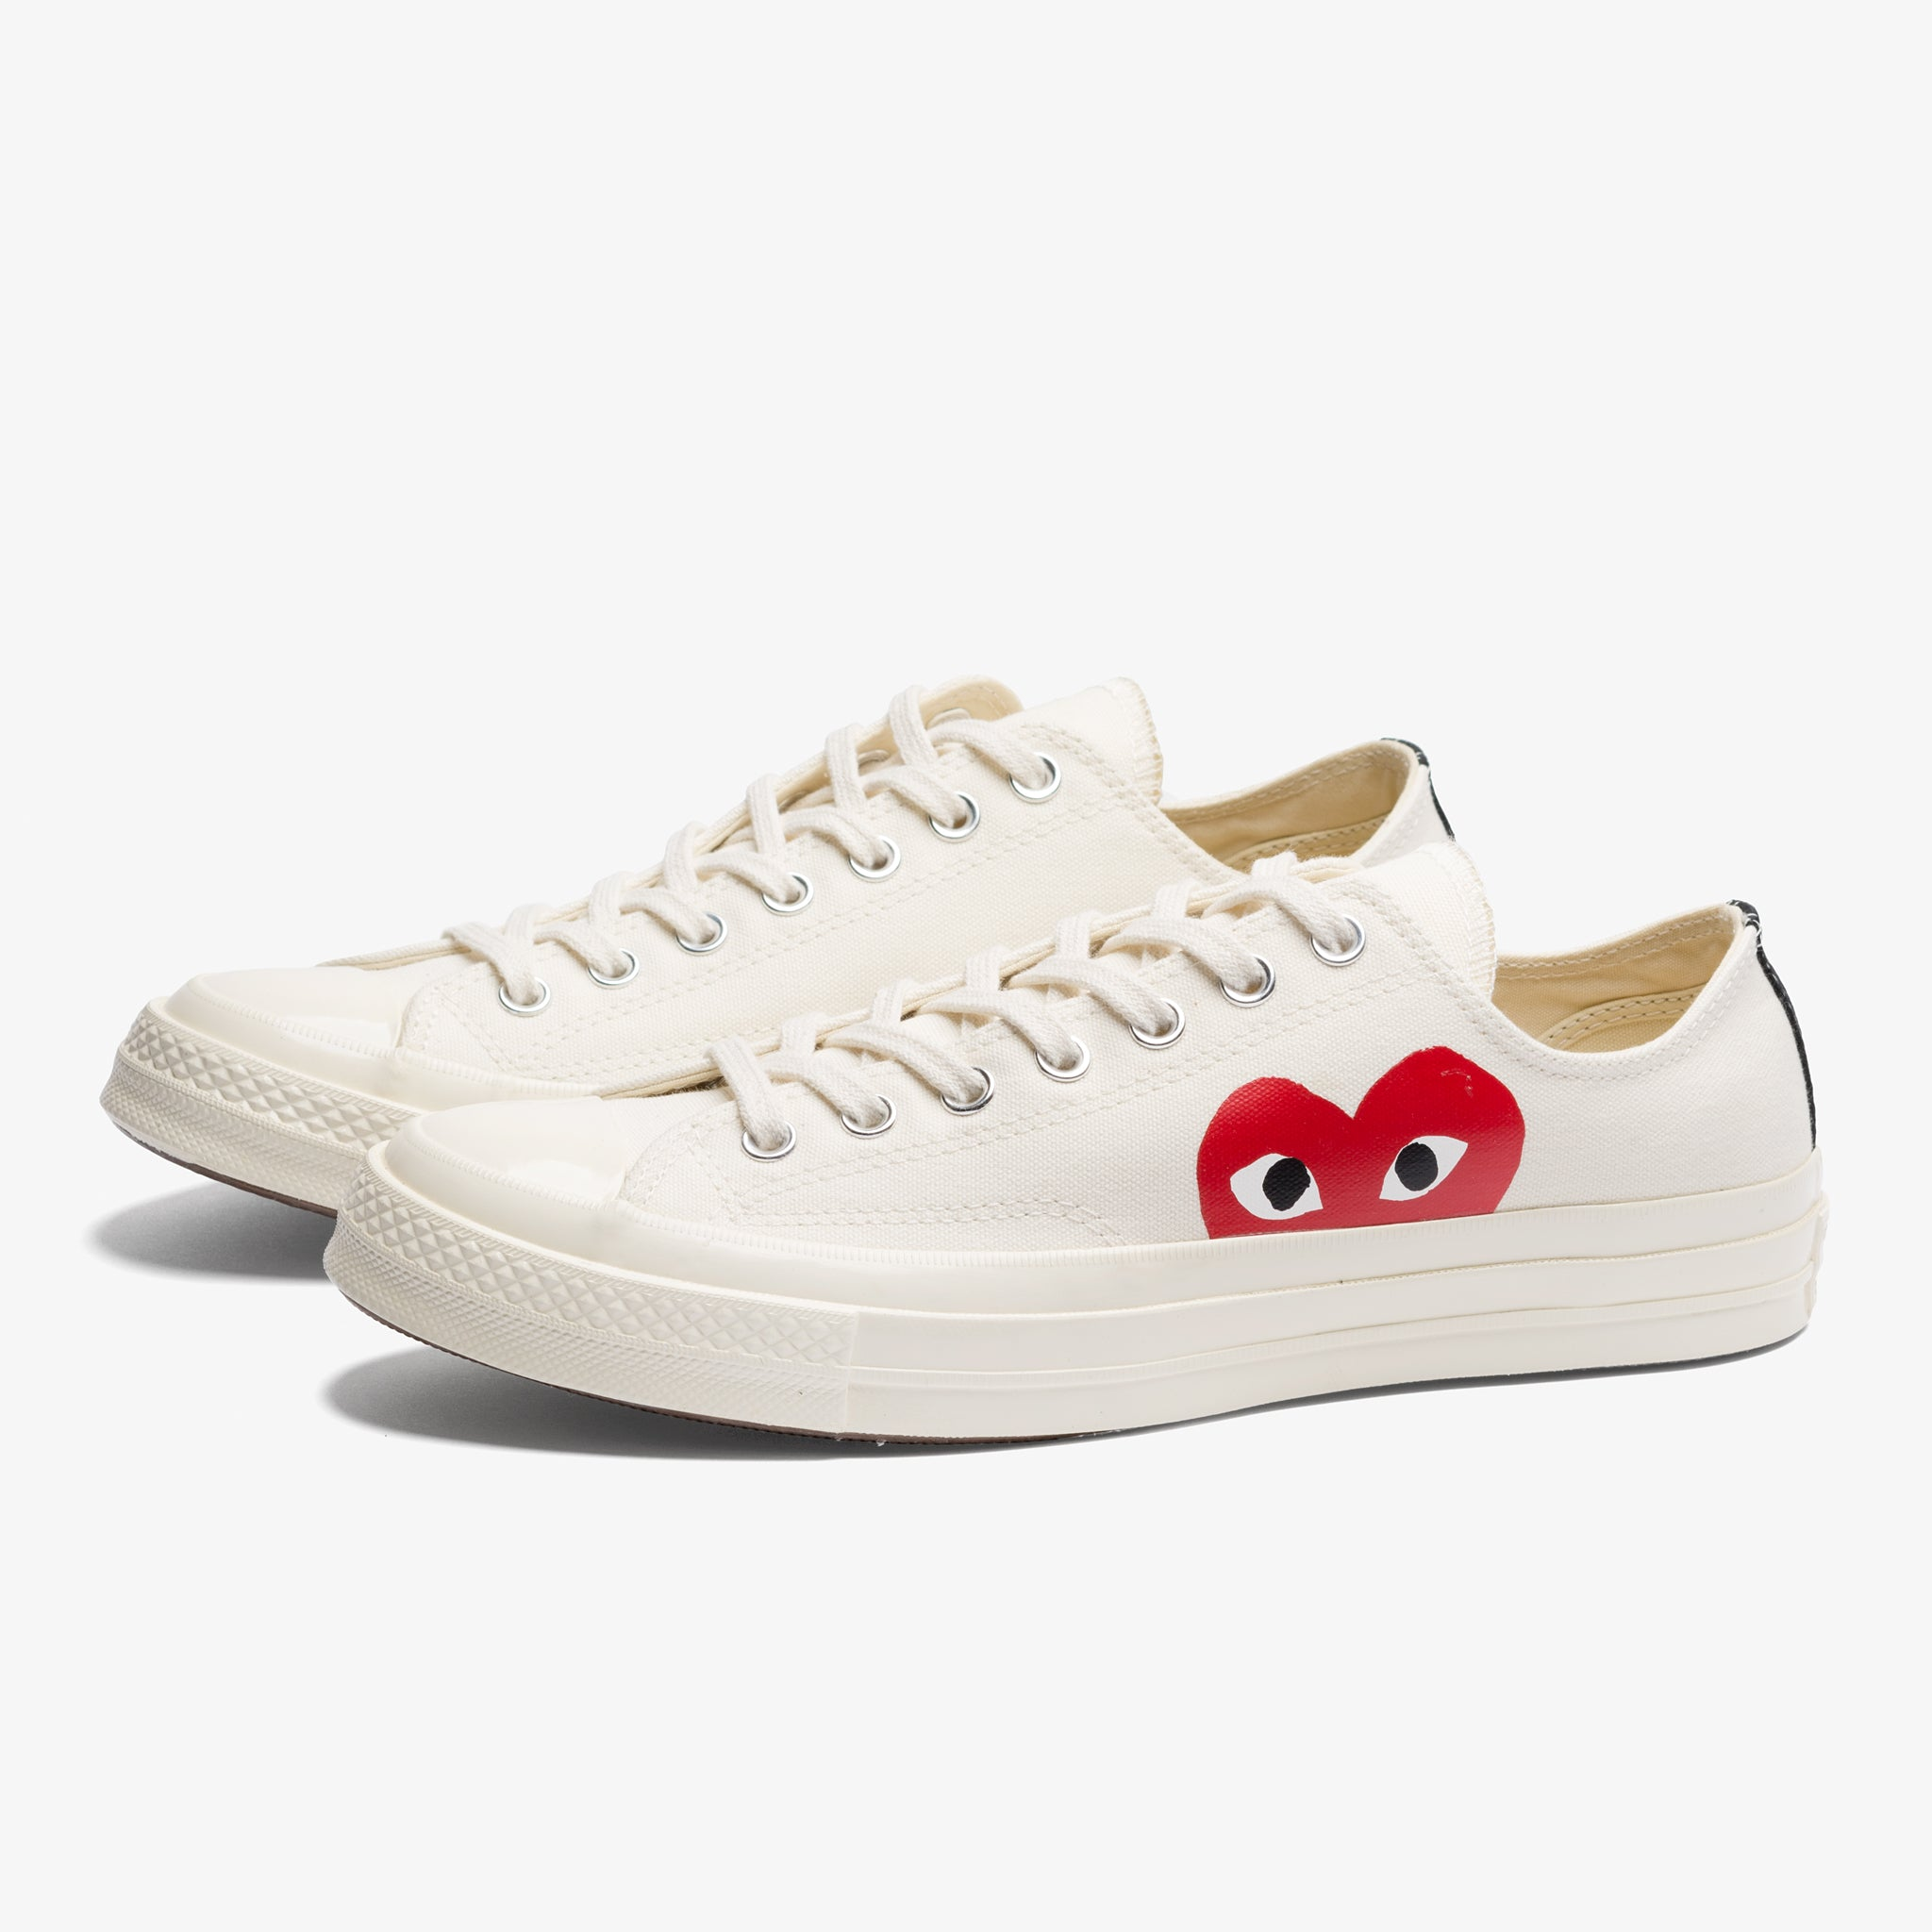 CDG PLAY CT 70 OX (Milk/White)